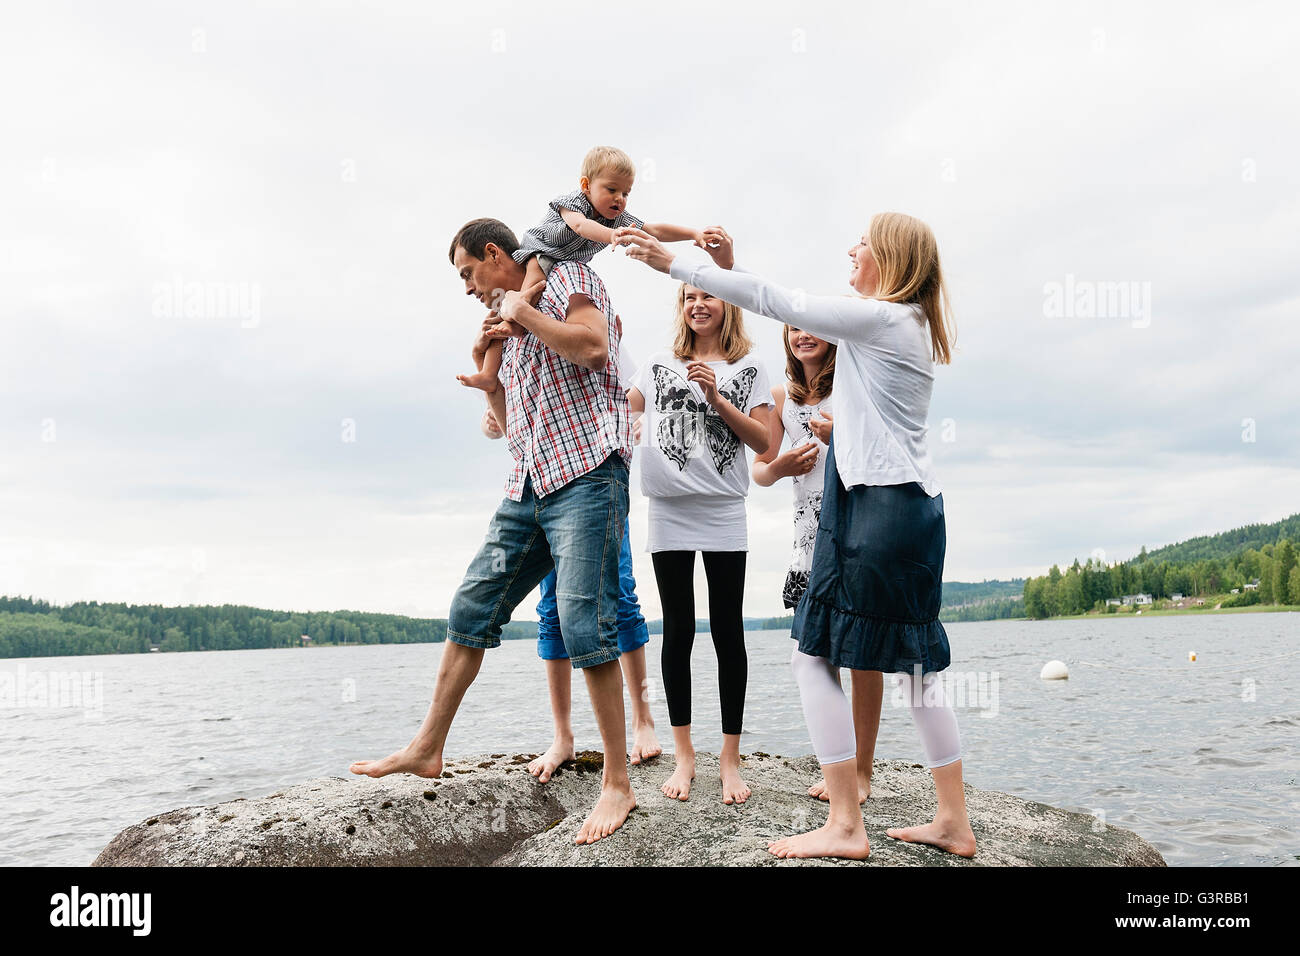 Sweden, Vastmanland, Bergslagen, Hallefors, Nygard, Family with four children standing on rock - Stock Image